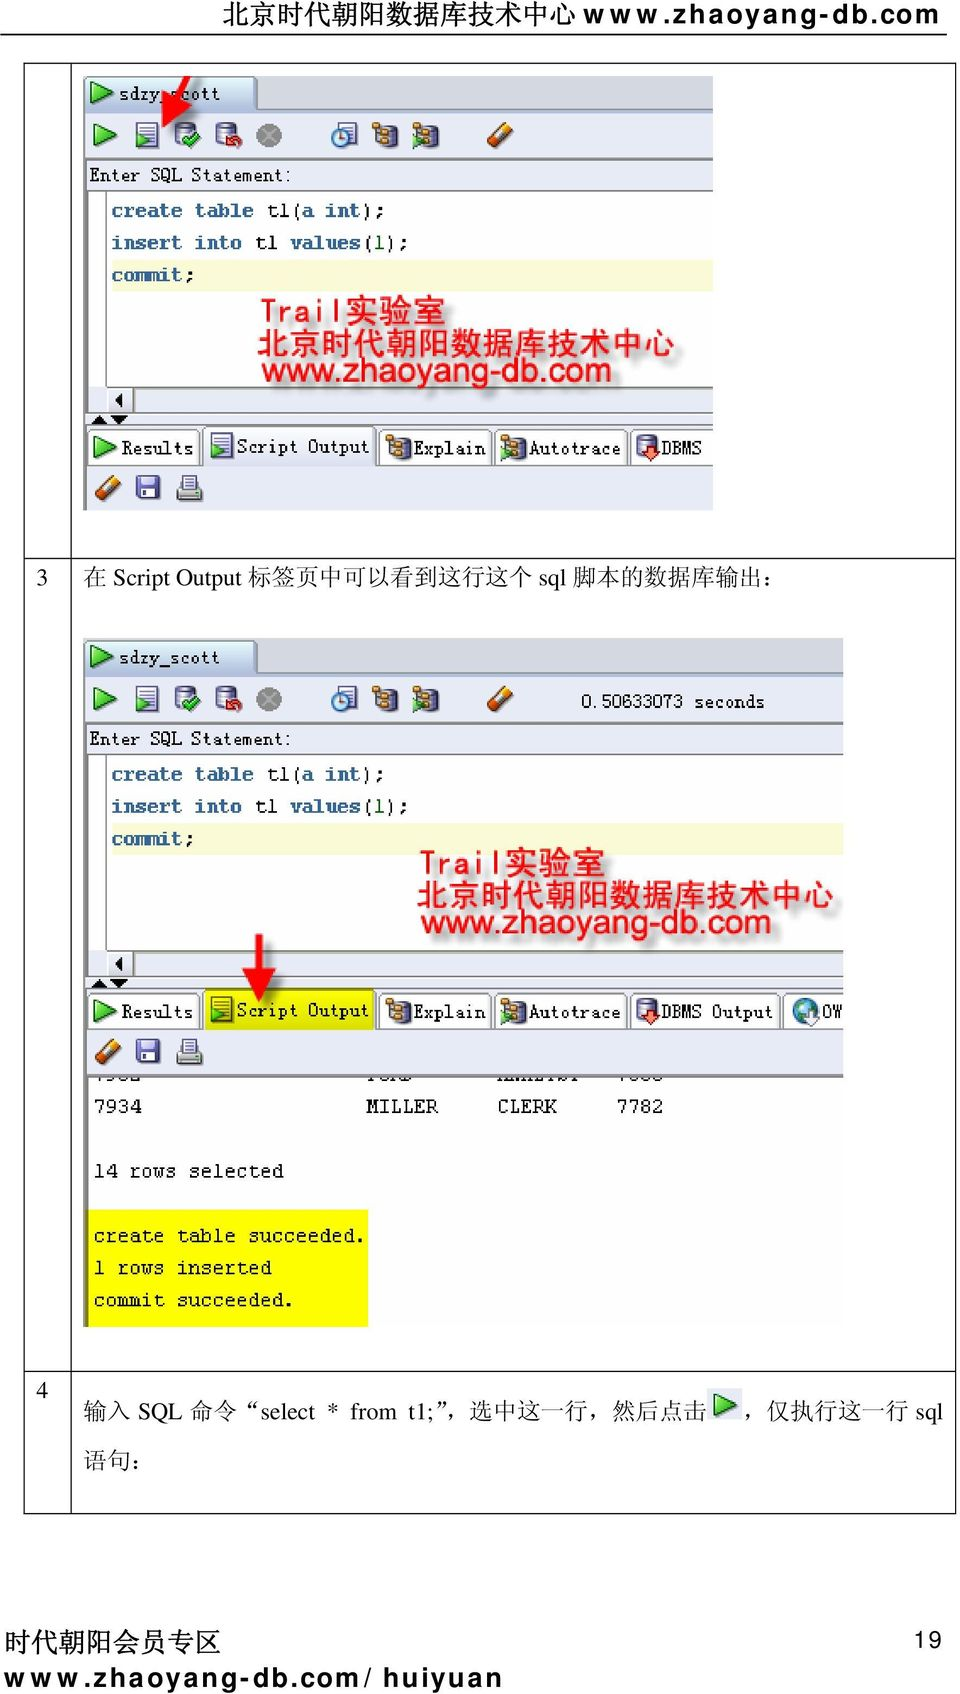 SQL 命 令 select * from t1;, 选 中 这 一